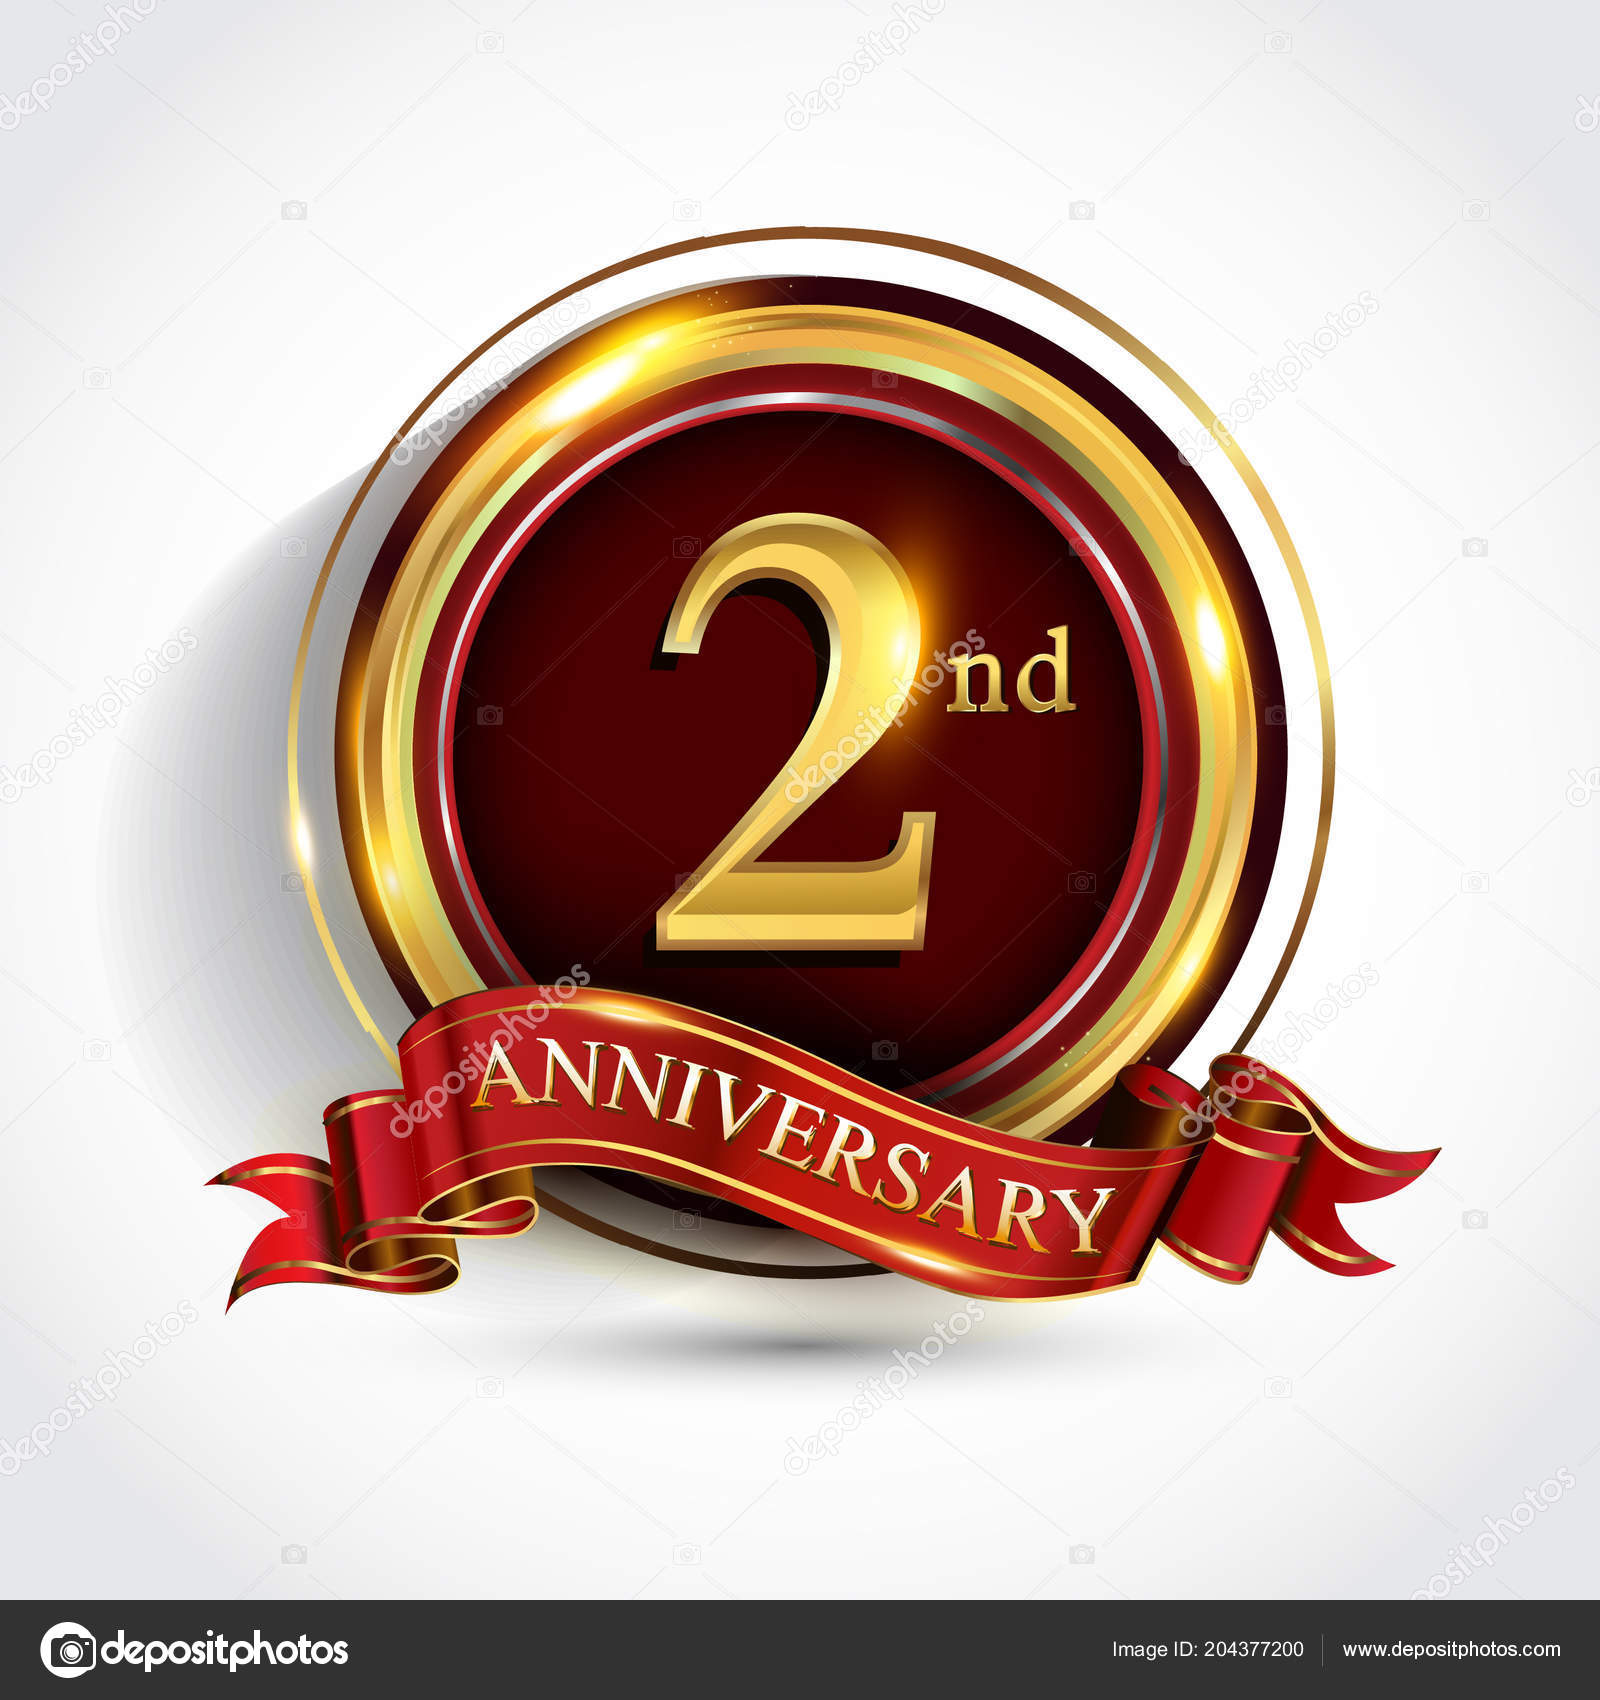 2nd Years Anniversary Celebration Logotype Logo Confetti Golden Ring Red Stock Vector C Vectorideas 204377200,Types Of Hamsters Breed